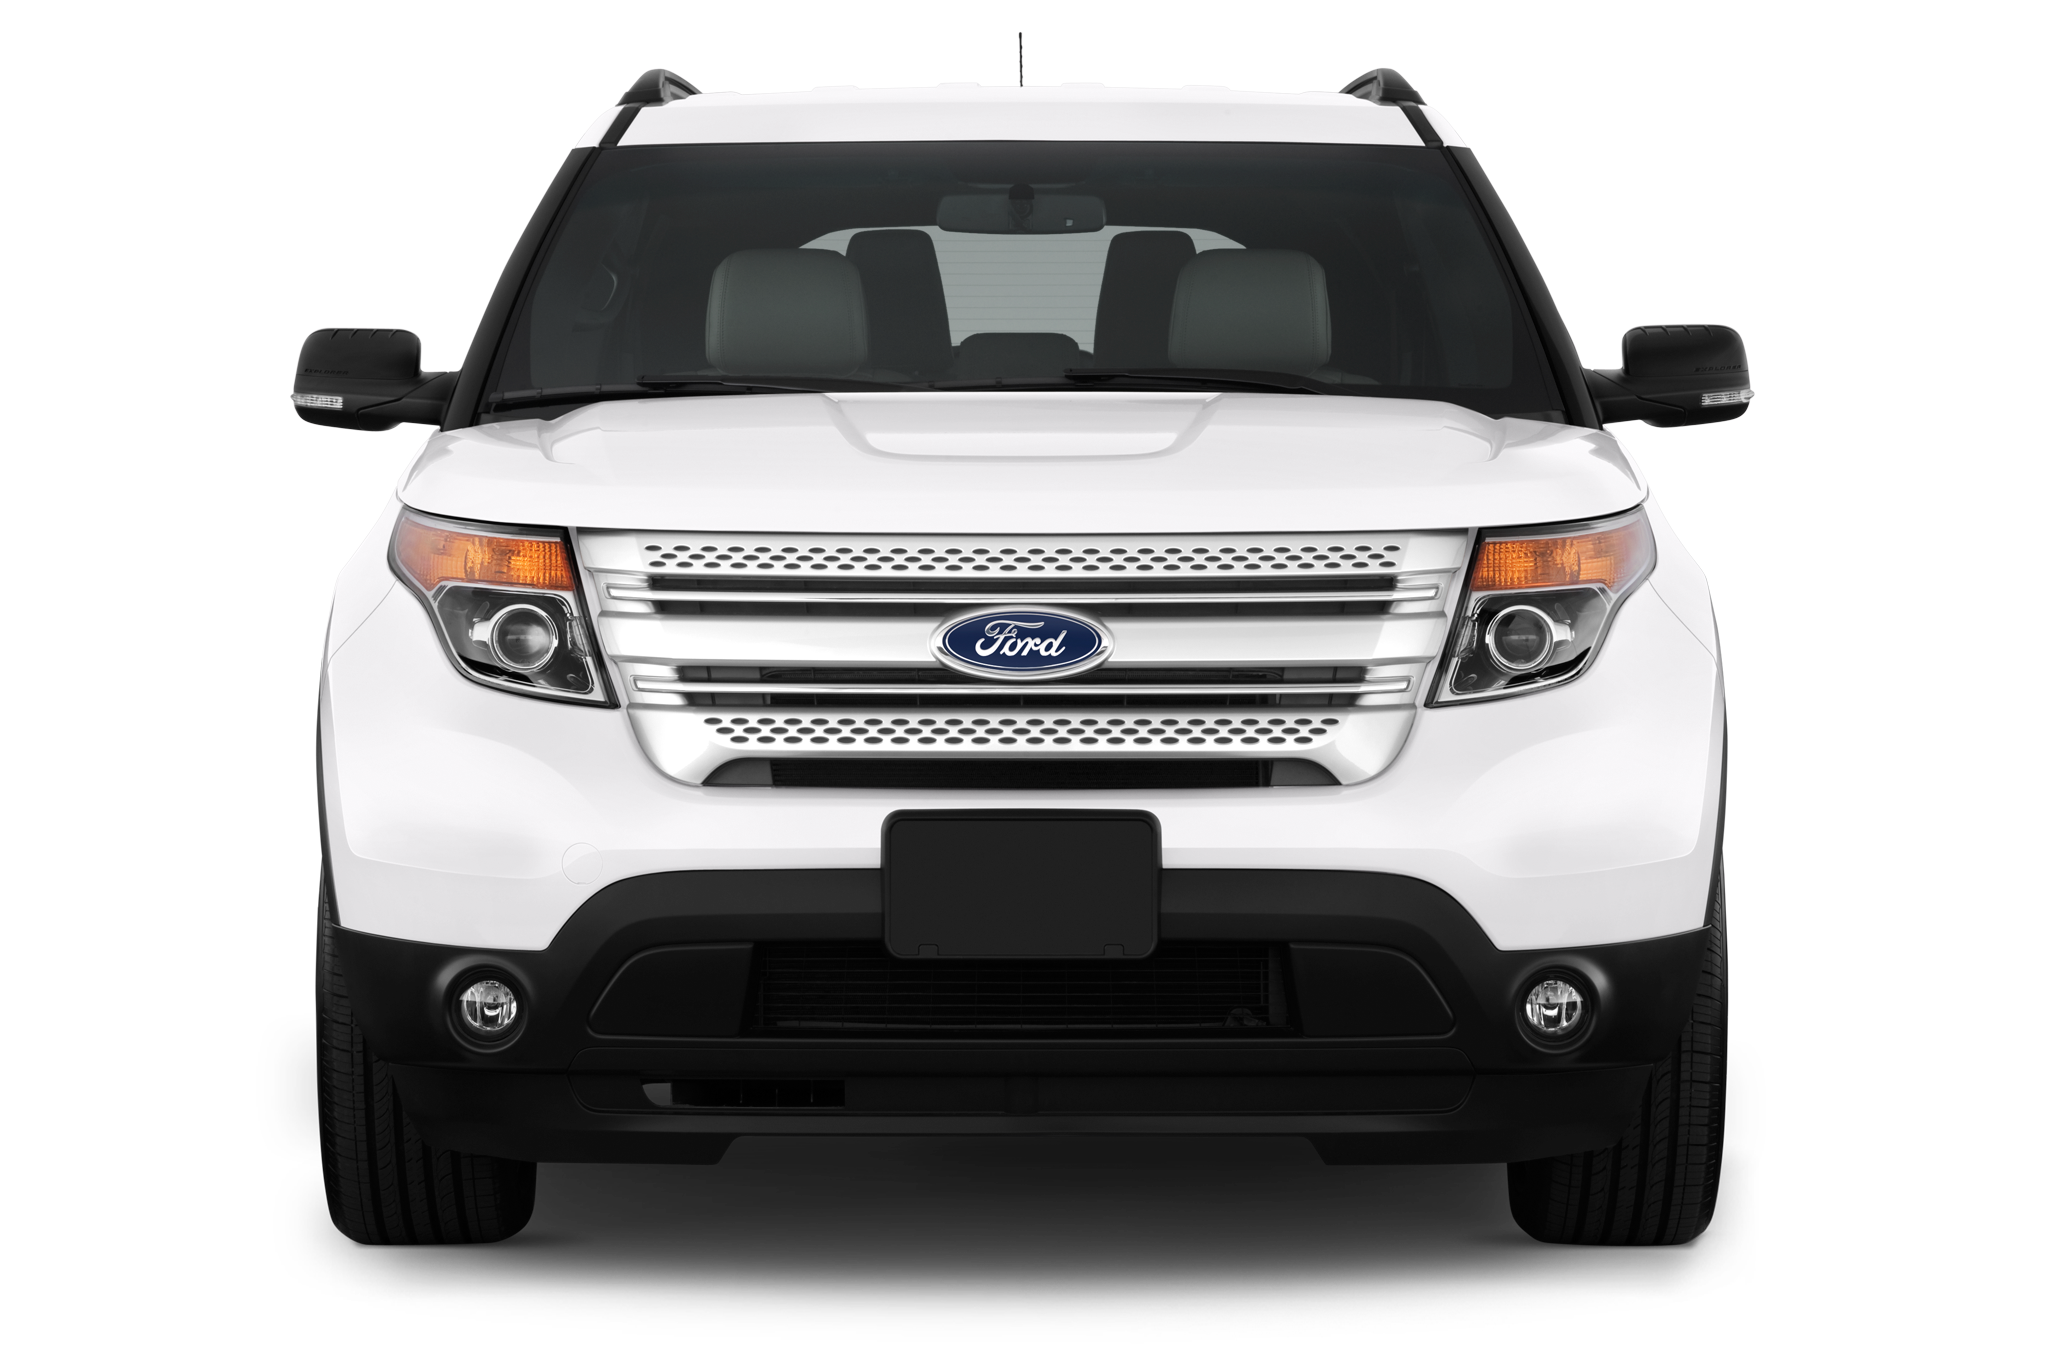 Ford Explorer Prototype Shows Off Revised Front And Rear